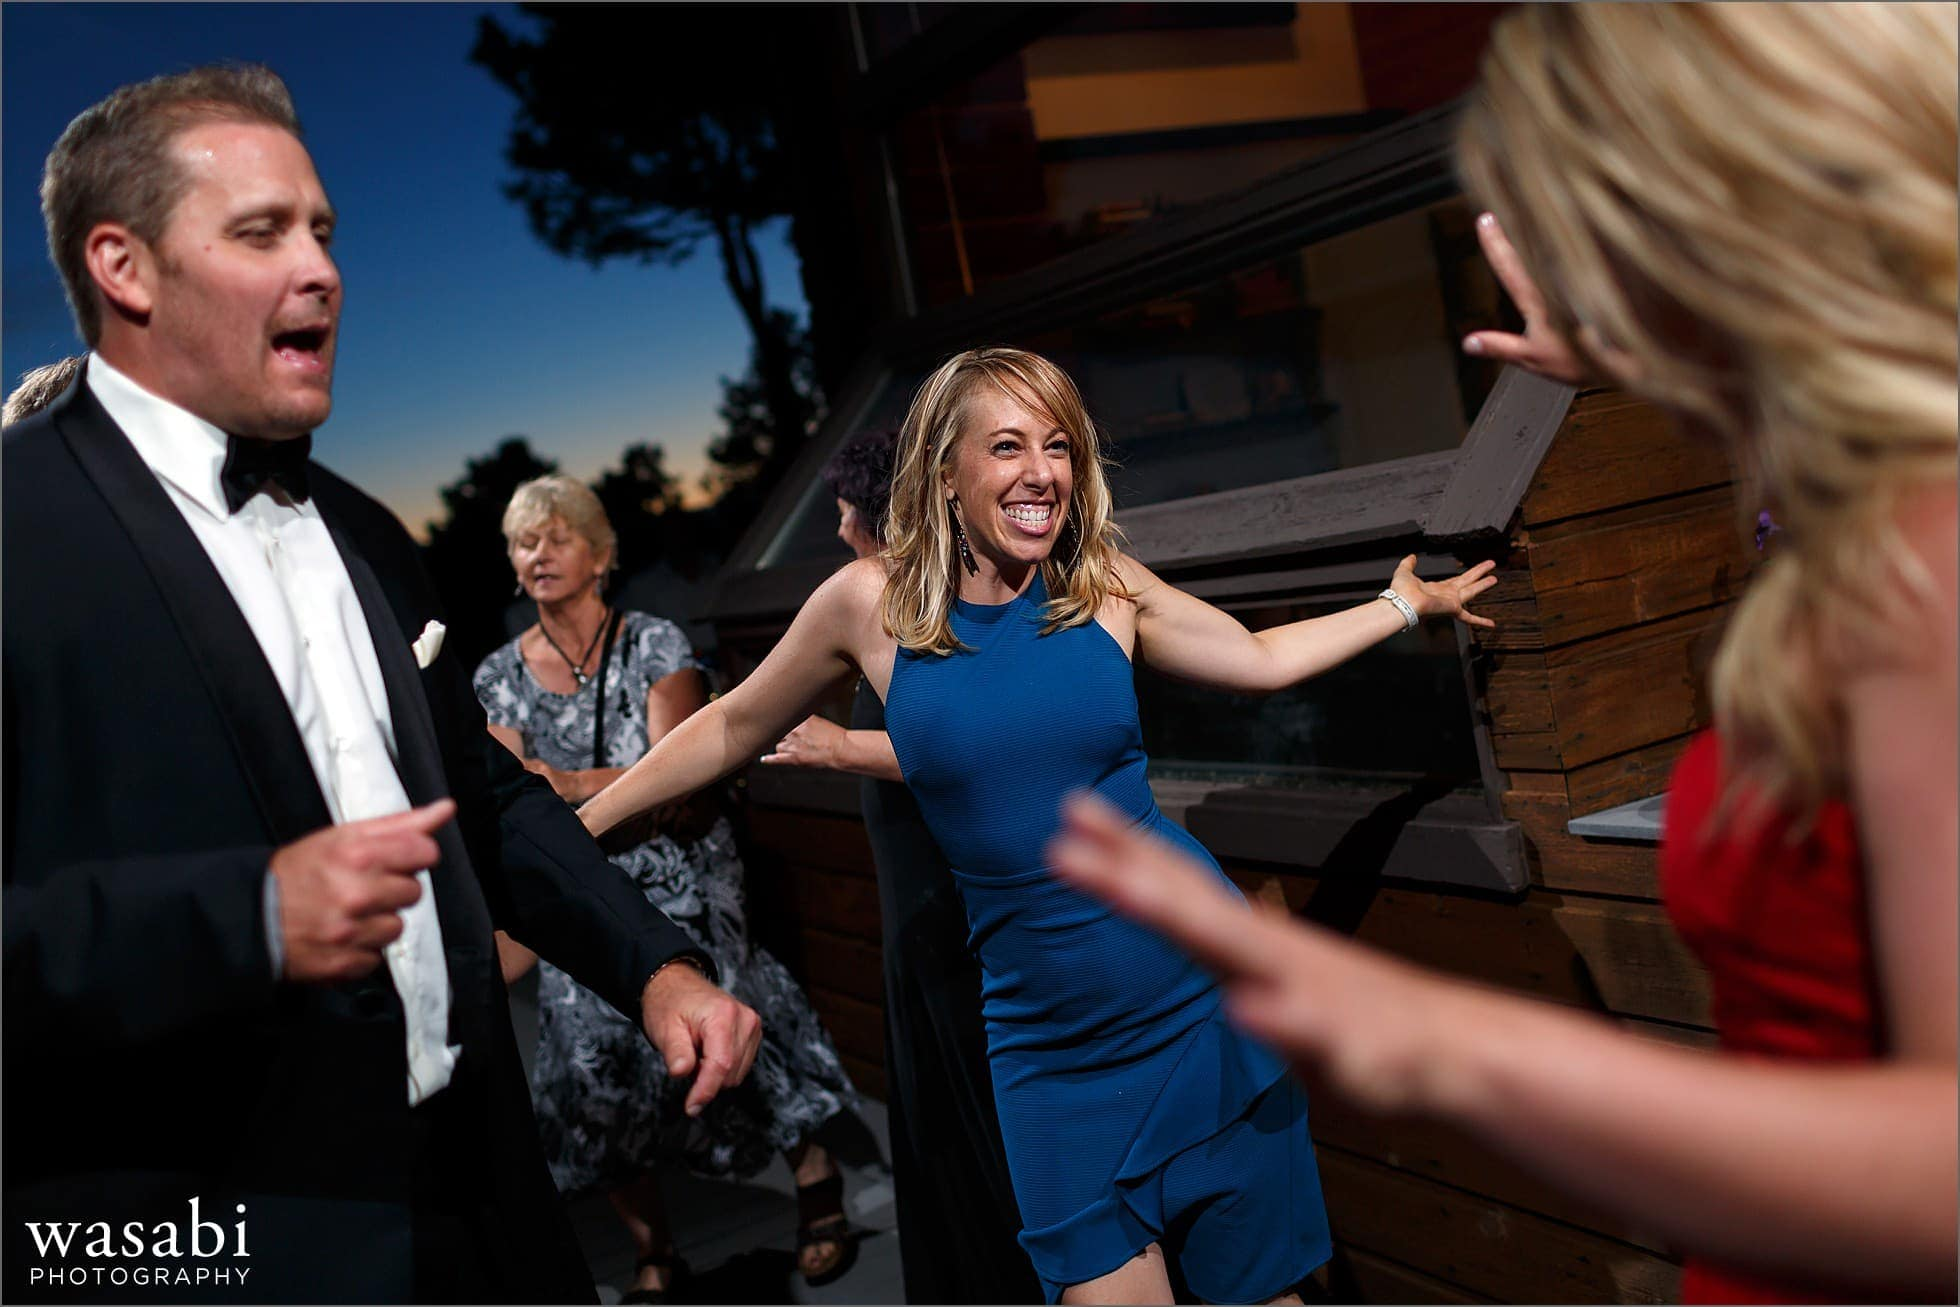 outdoor dancing photos during wedding reception at a private estate on Lookout Mountain in Golden Colorado